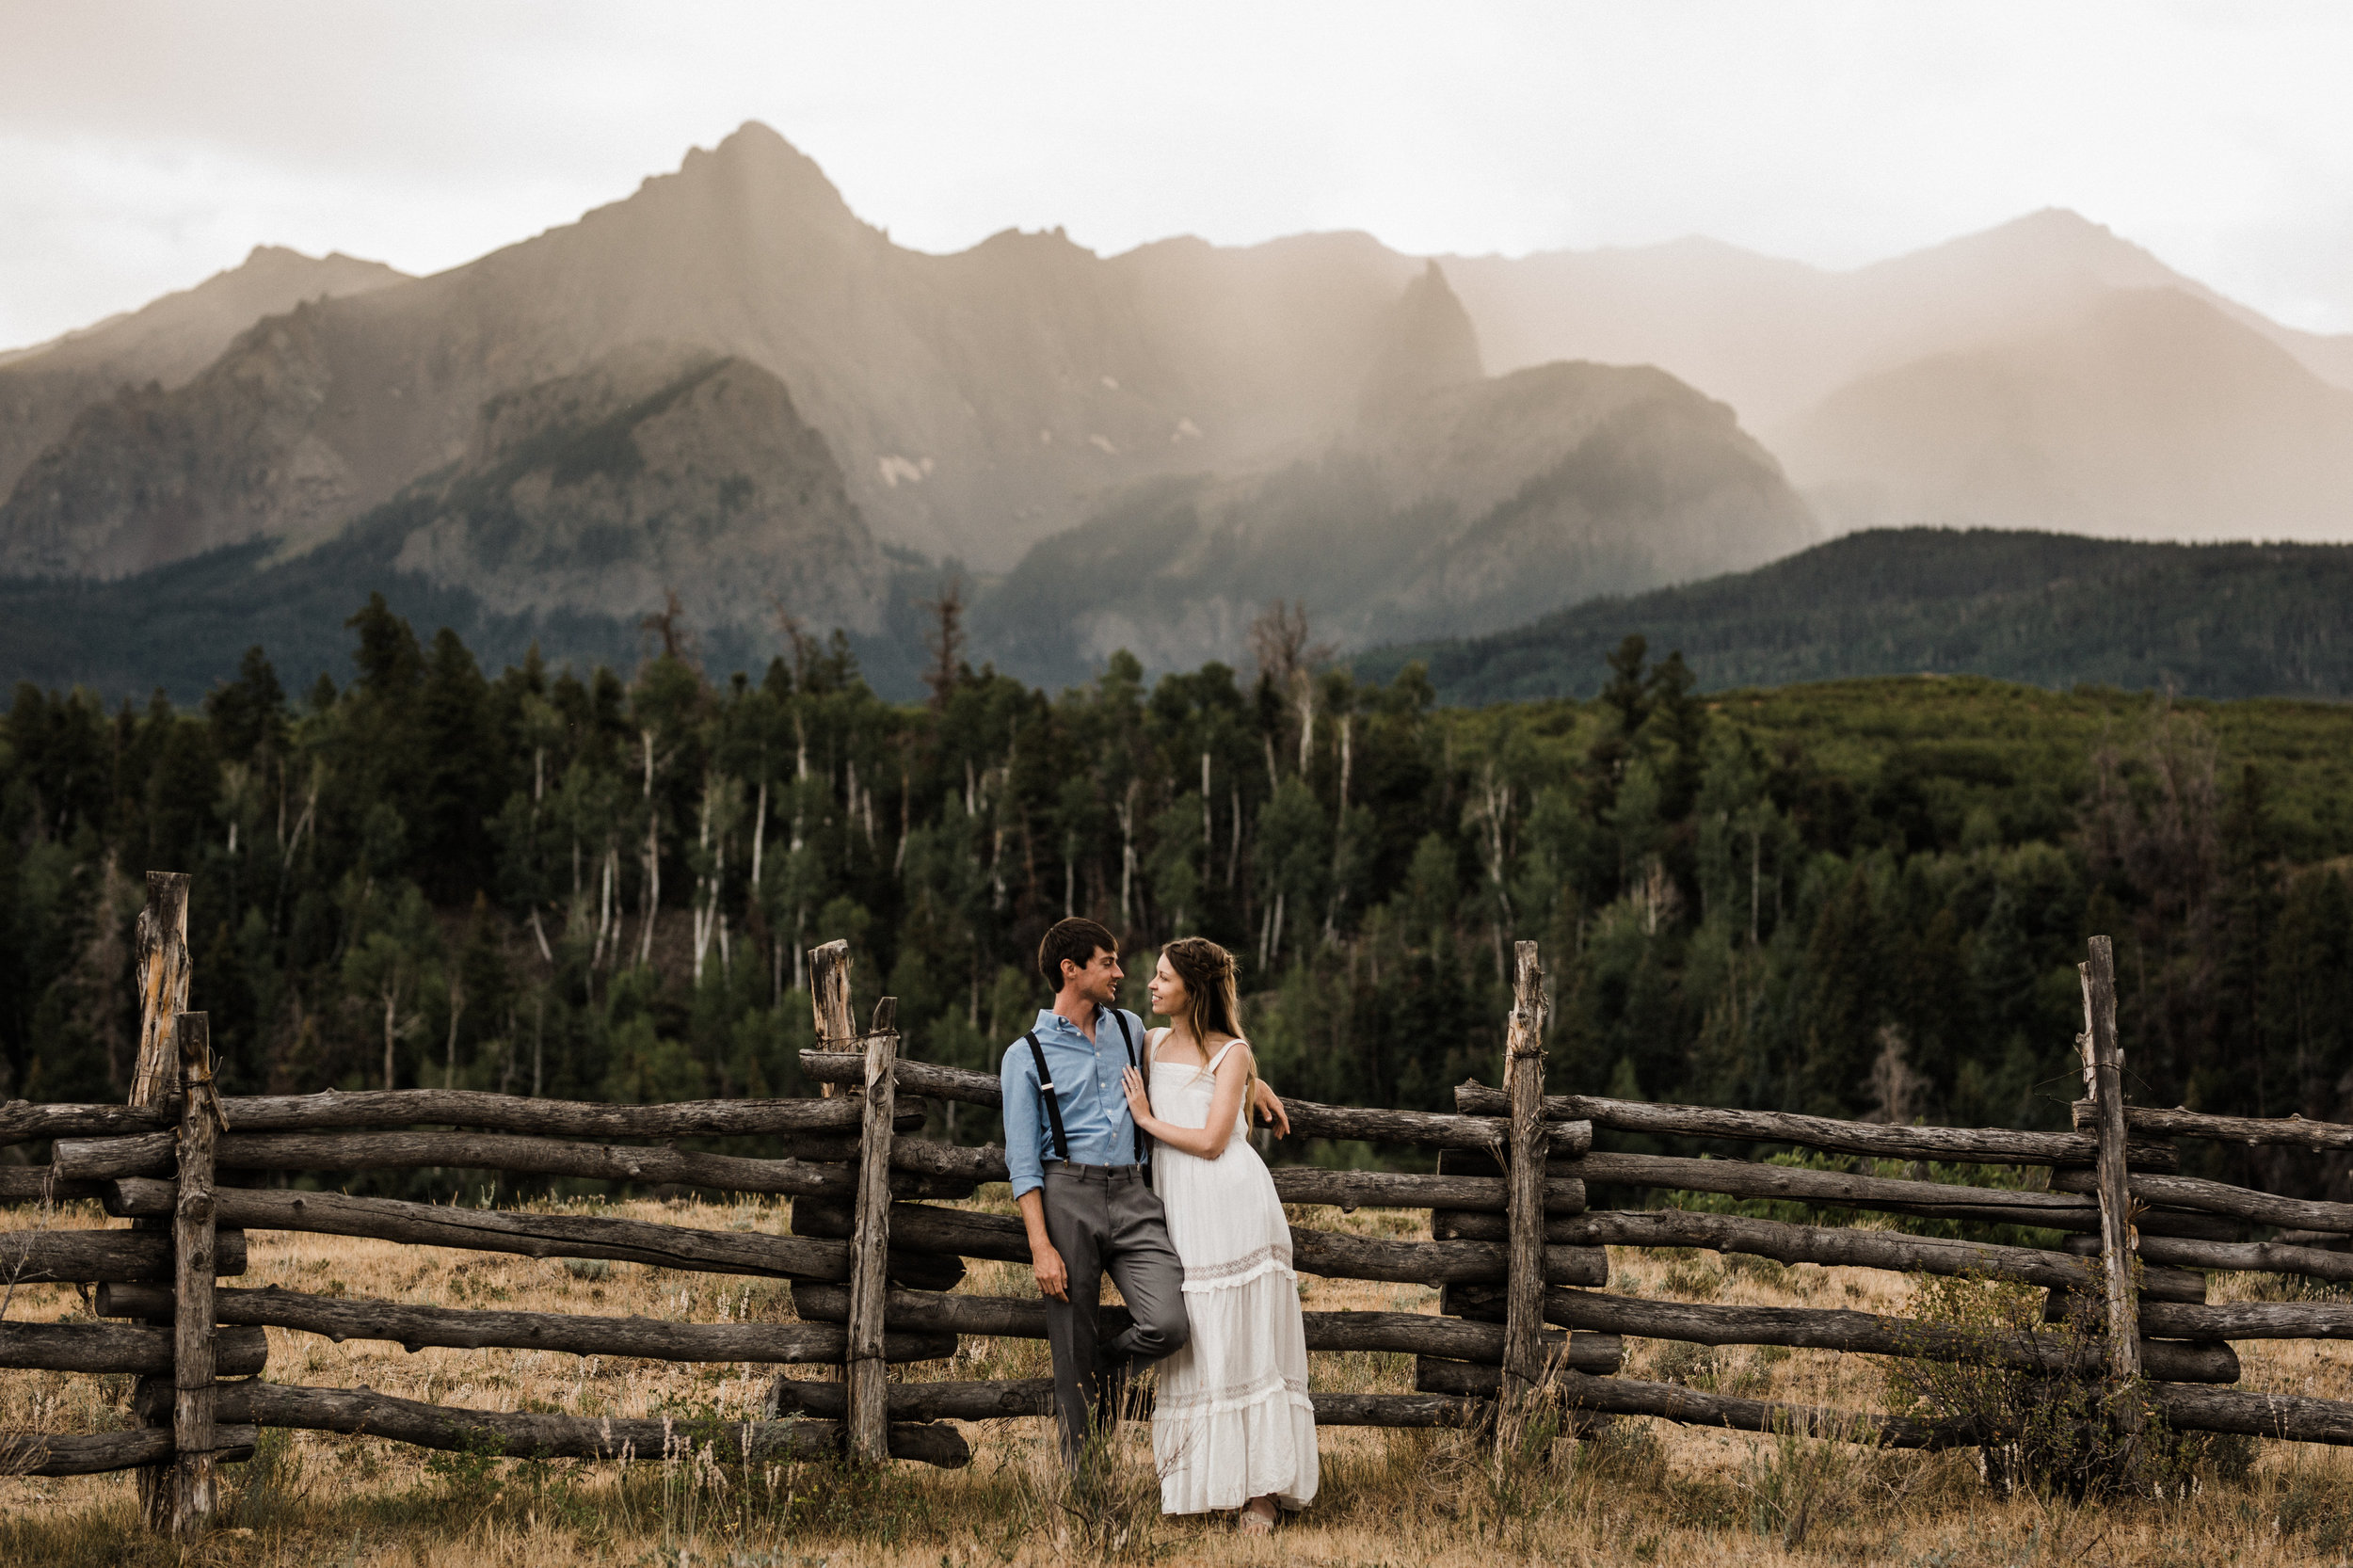 leahandashton-telluride-wedding-photography-KC-0152.jpg